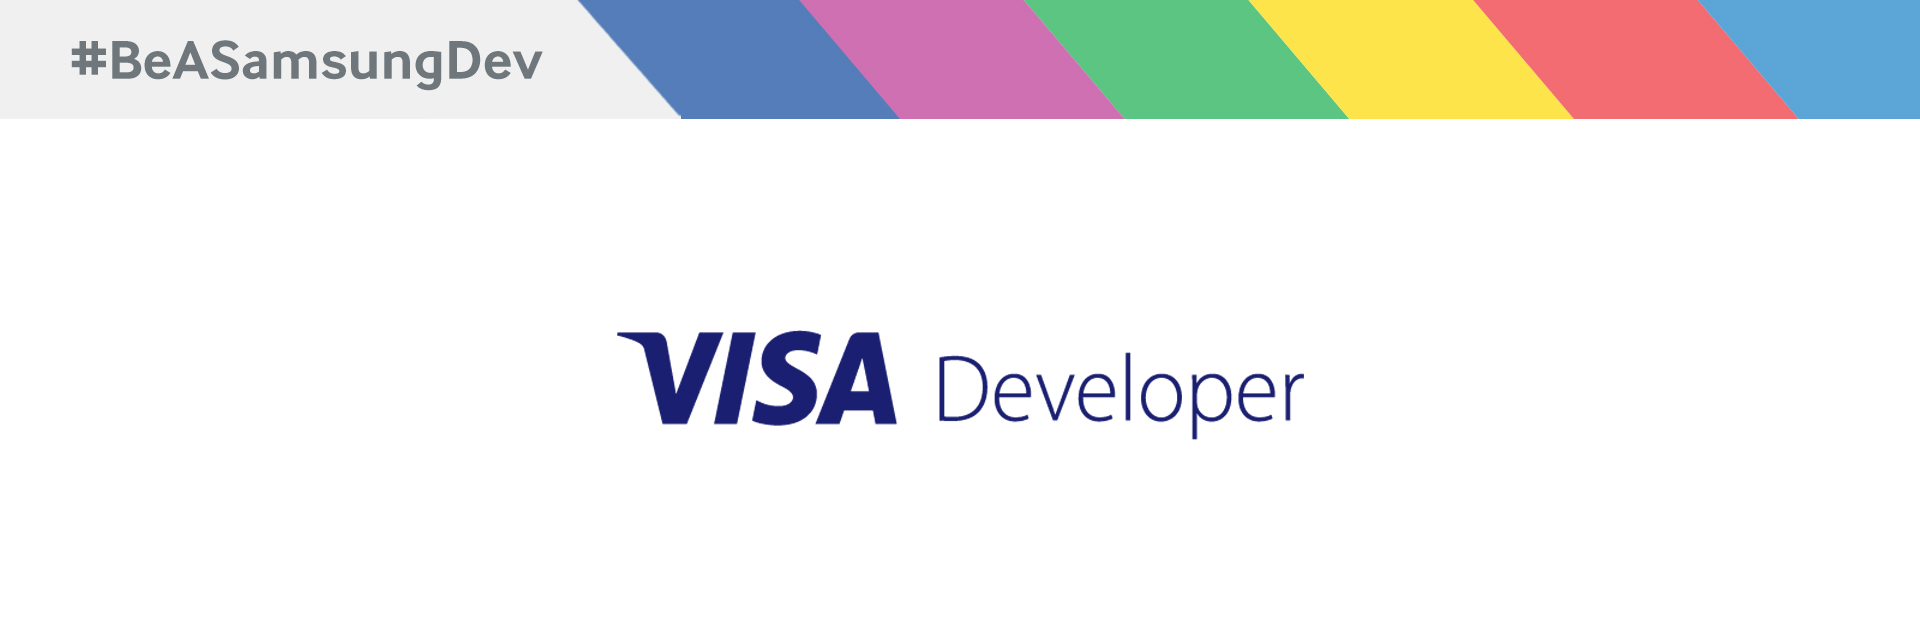 'The 2018 Source Code': Visa Advises Devs To Think Convenience And Partnership